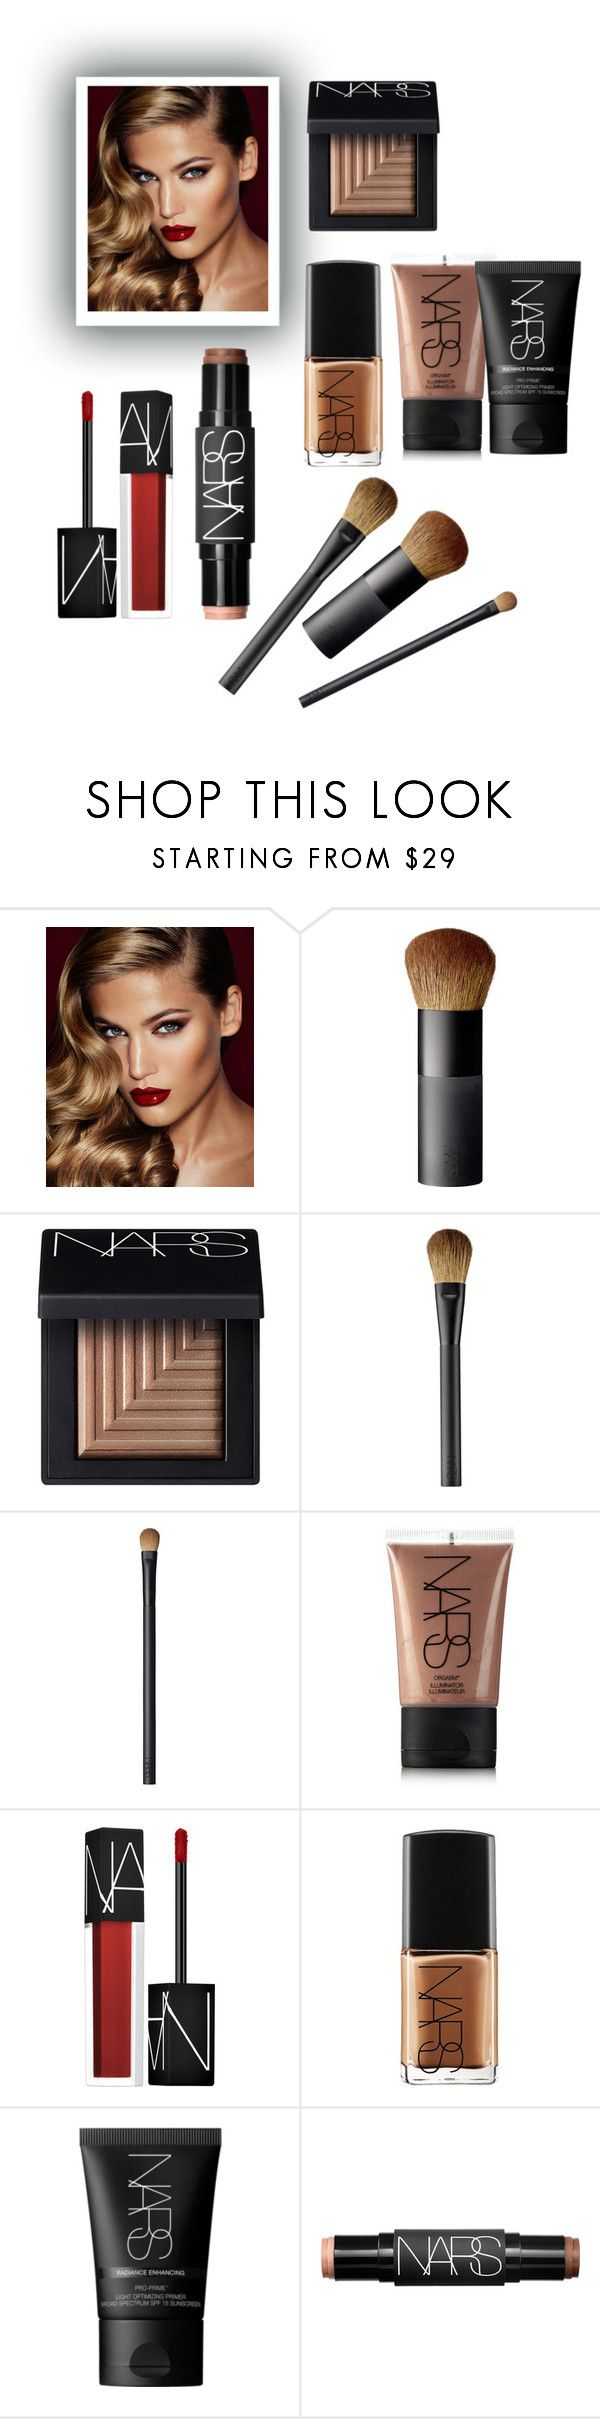 """So Narsistic .."" by parisareyhanian ❤ liked on Polyvore featuring beauty, Charlotte Tilbury and NARS Cosmetics"